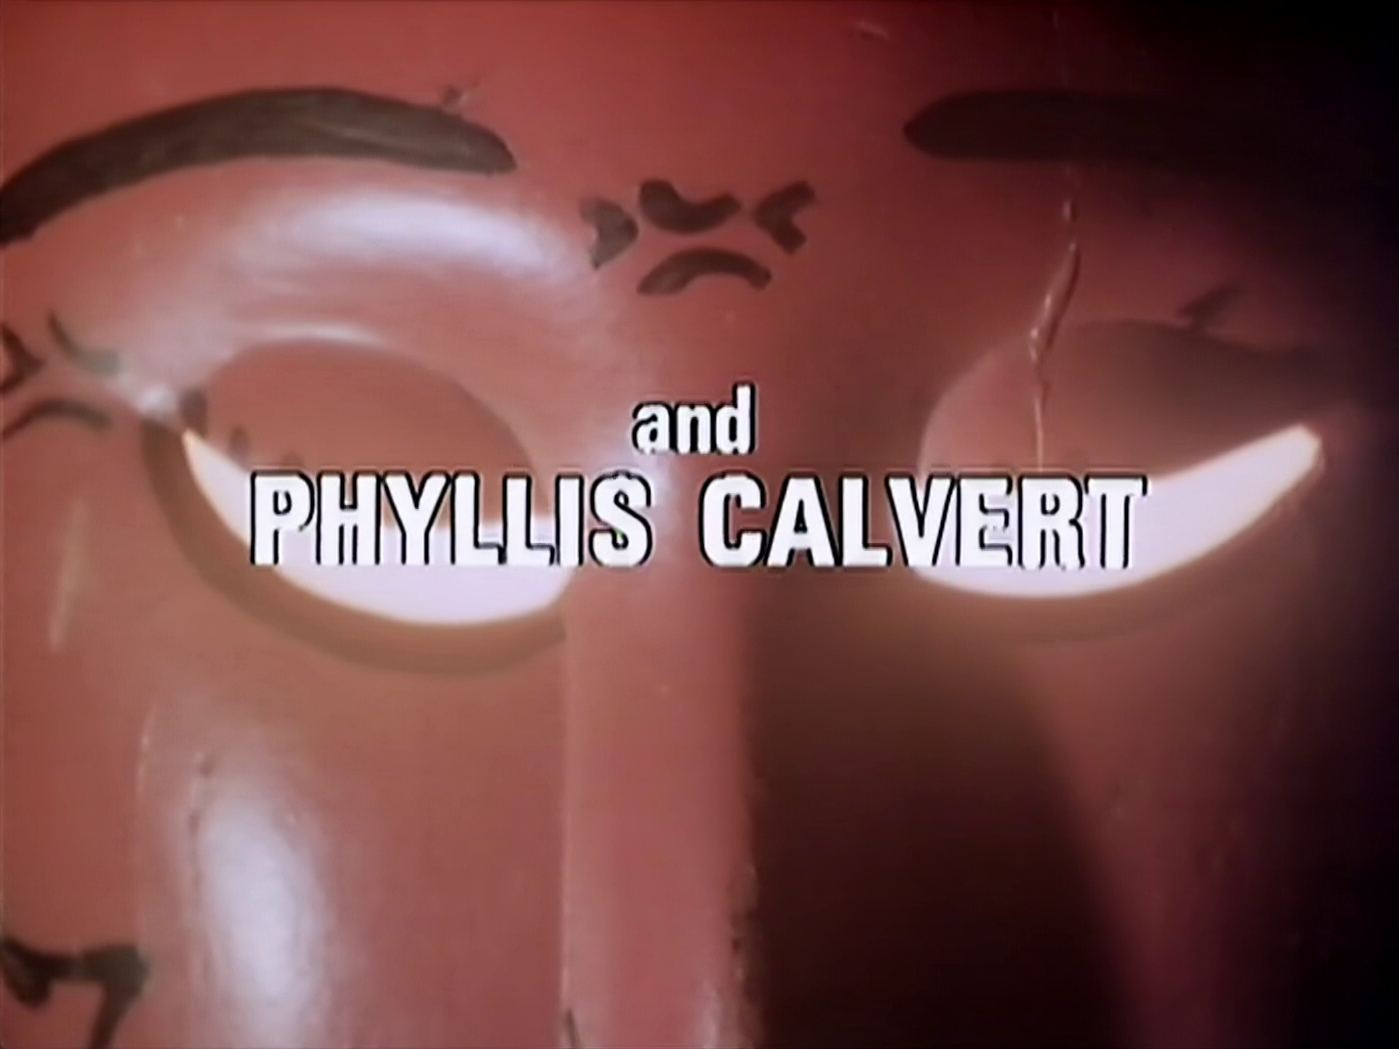 Opening credits from the 1983 'The Tribute' episode of Tales of the Unexpected (1979-1988) (5). Phyllis Calvert